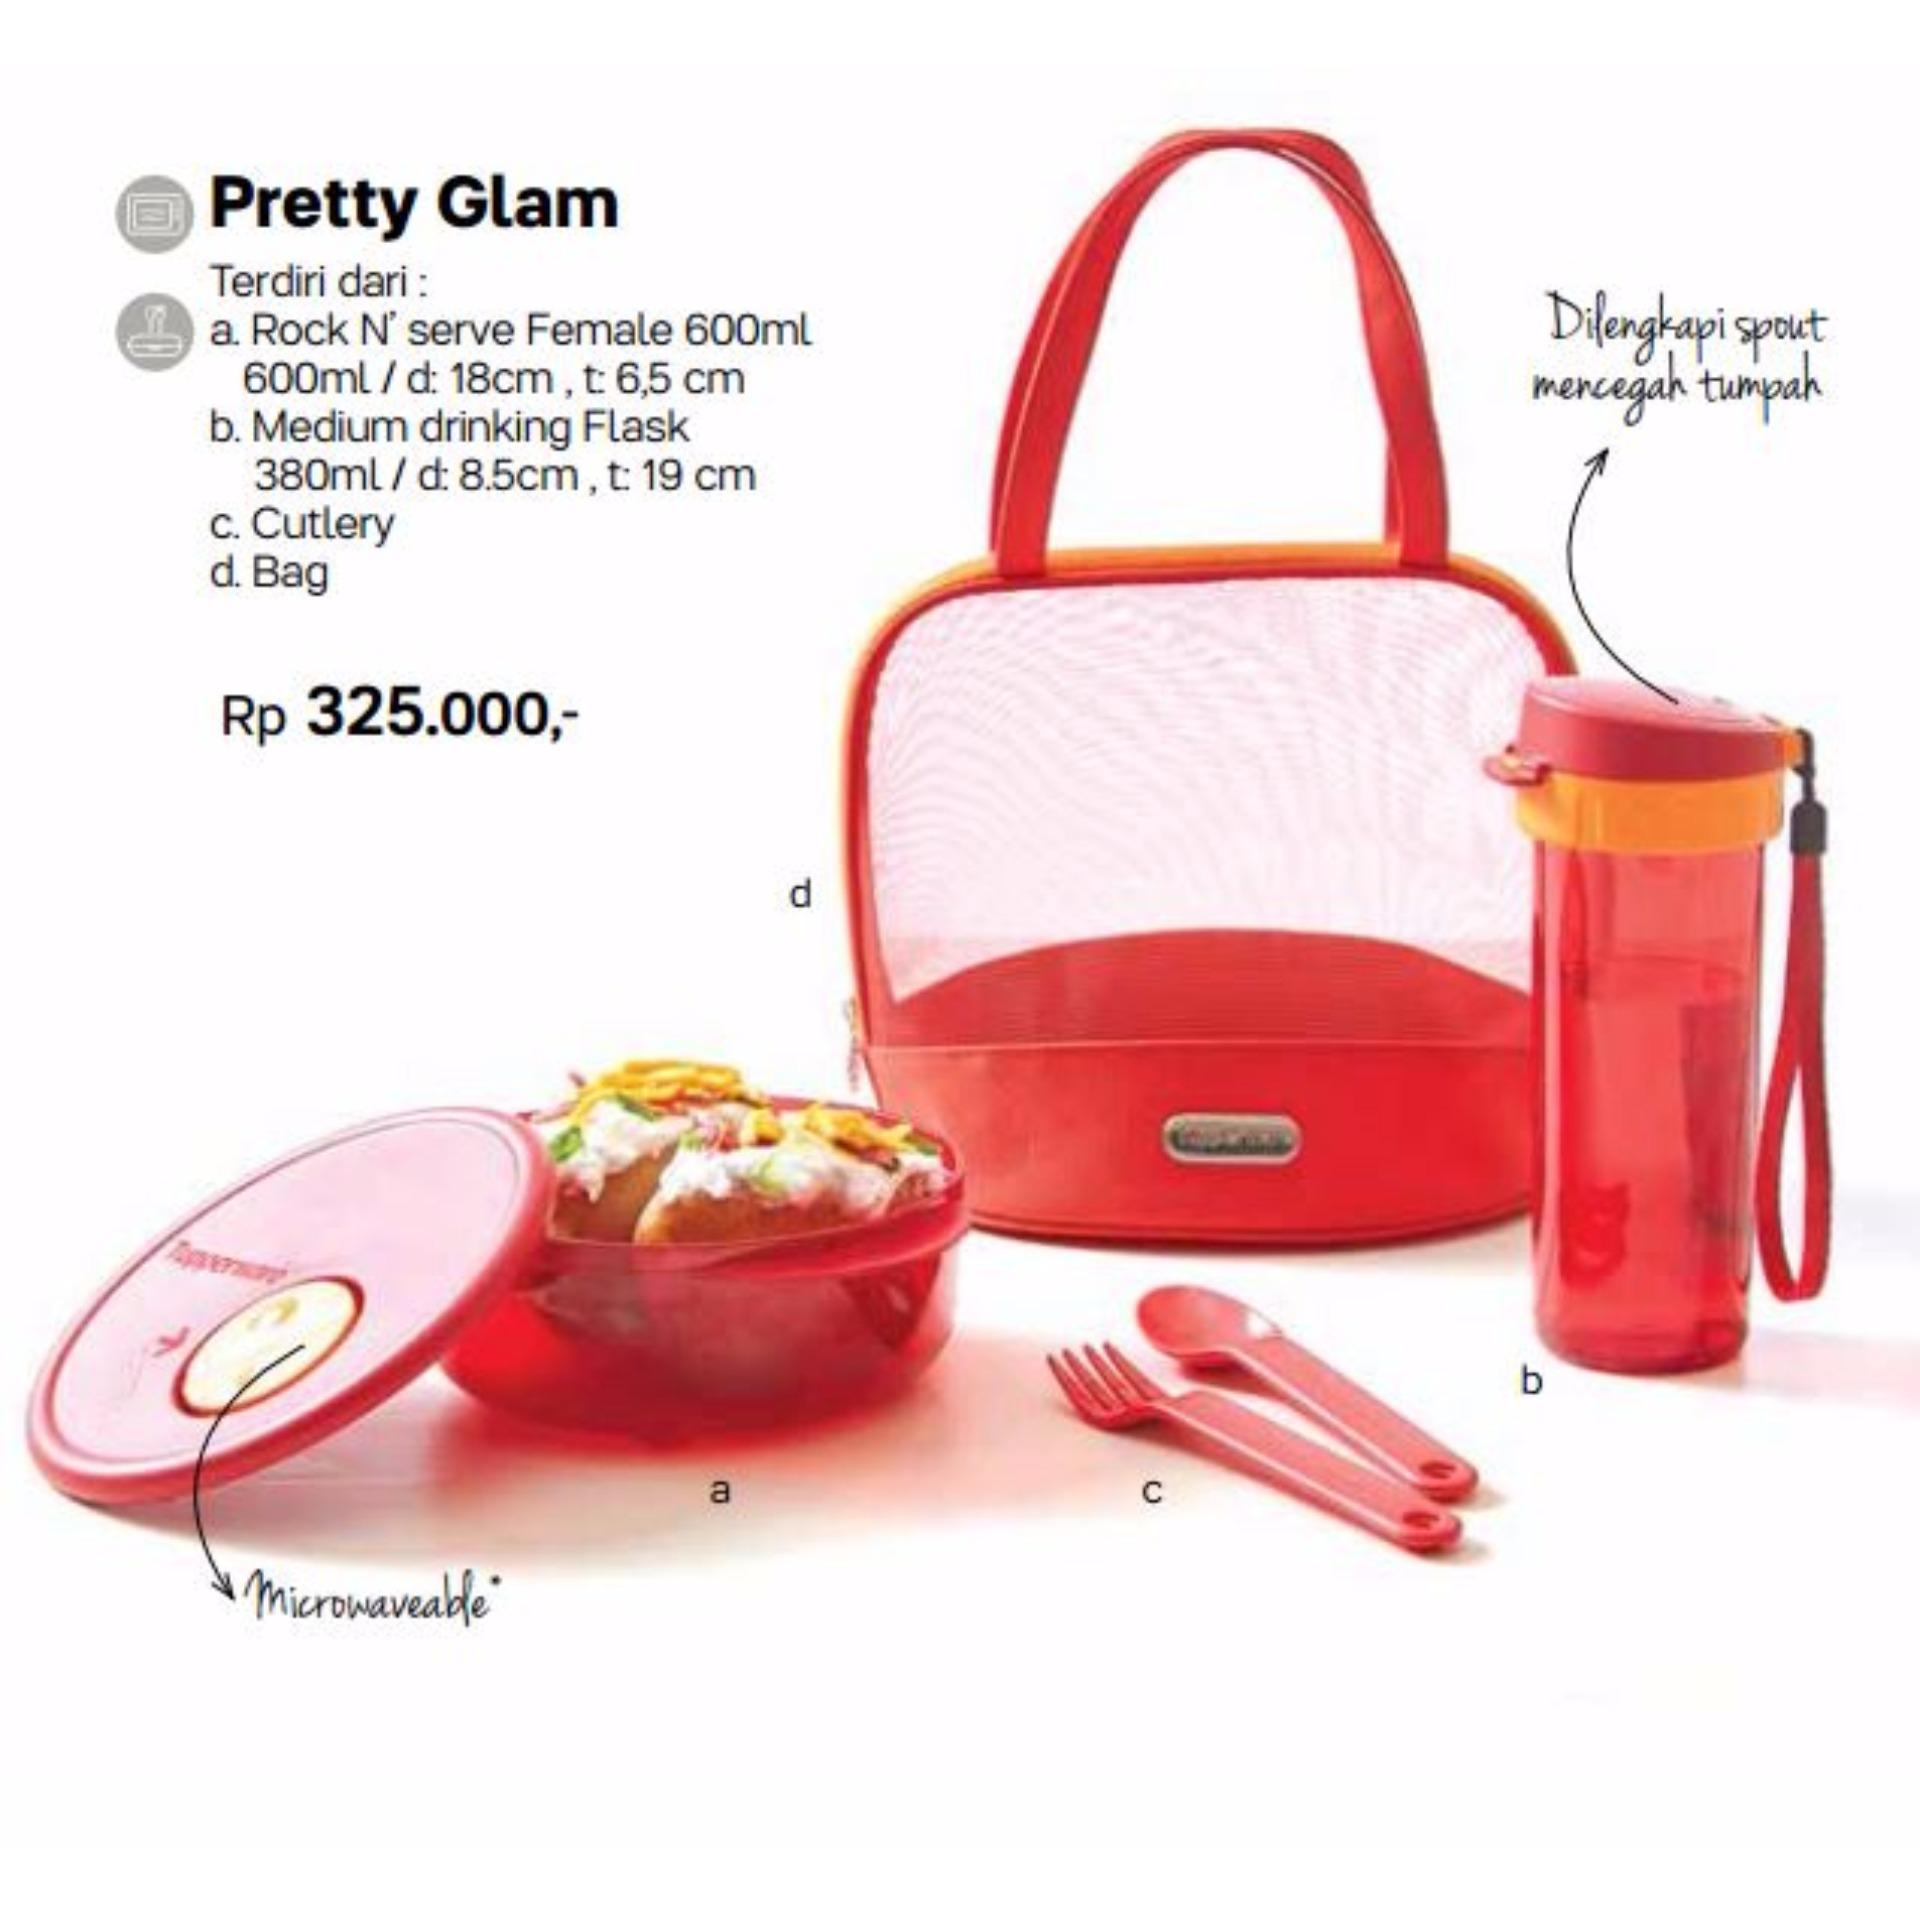 Tupperware Sweet Blossom Hijau Daftar Harga Terbaru Indonesia Set Pretty Glam Lunch Box